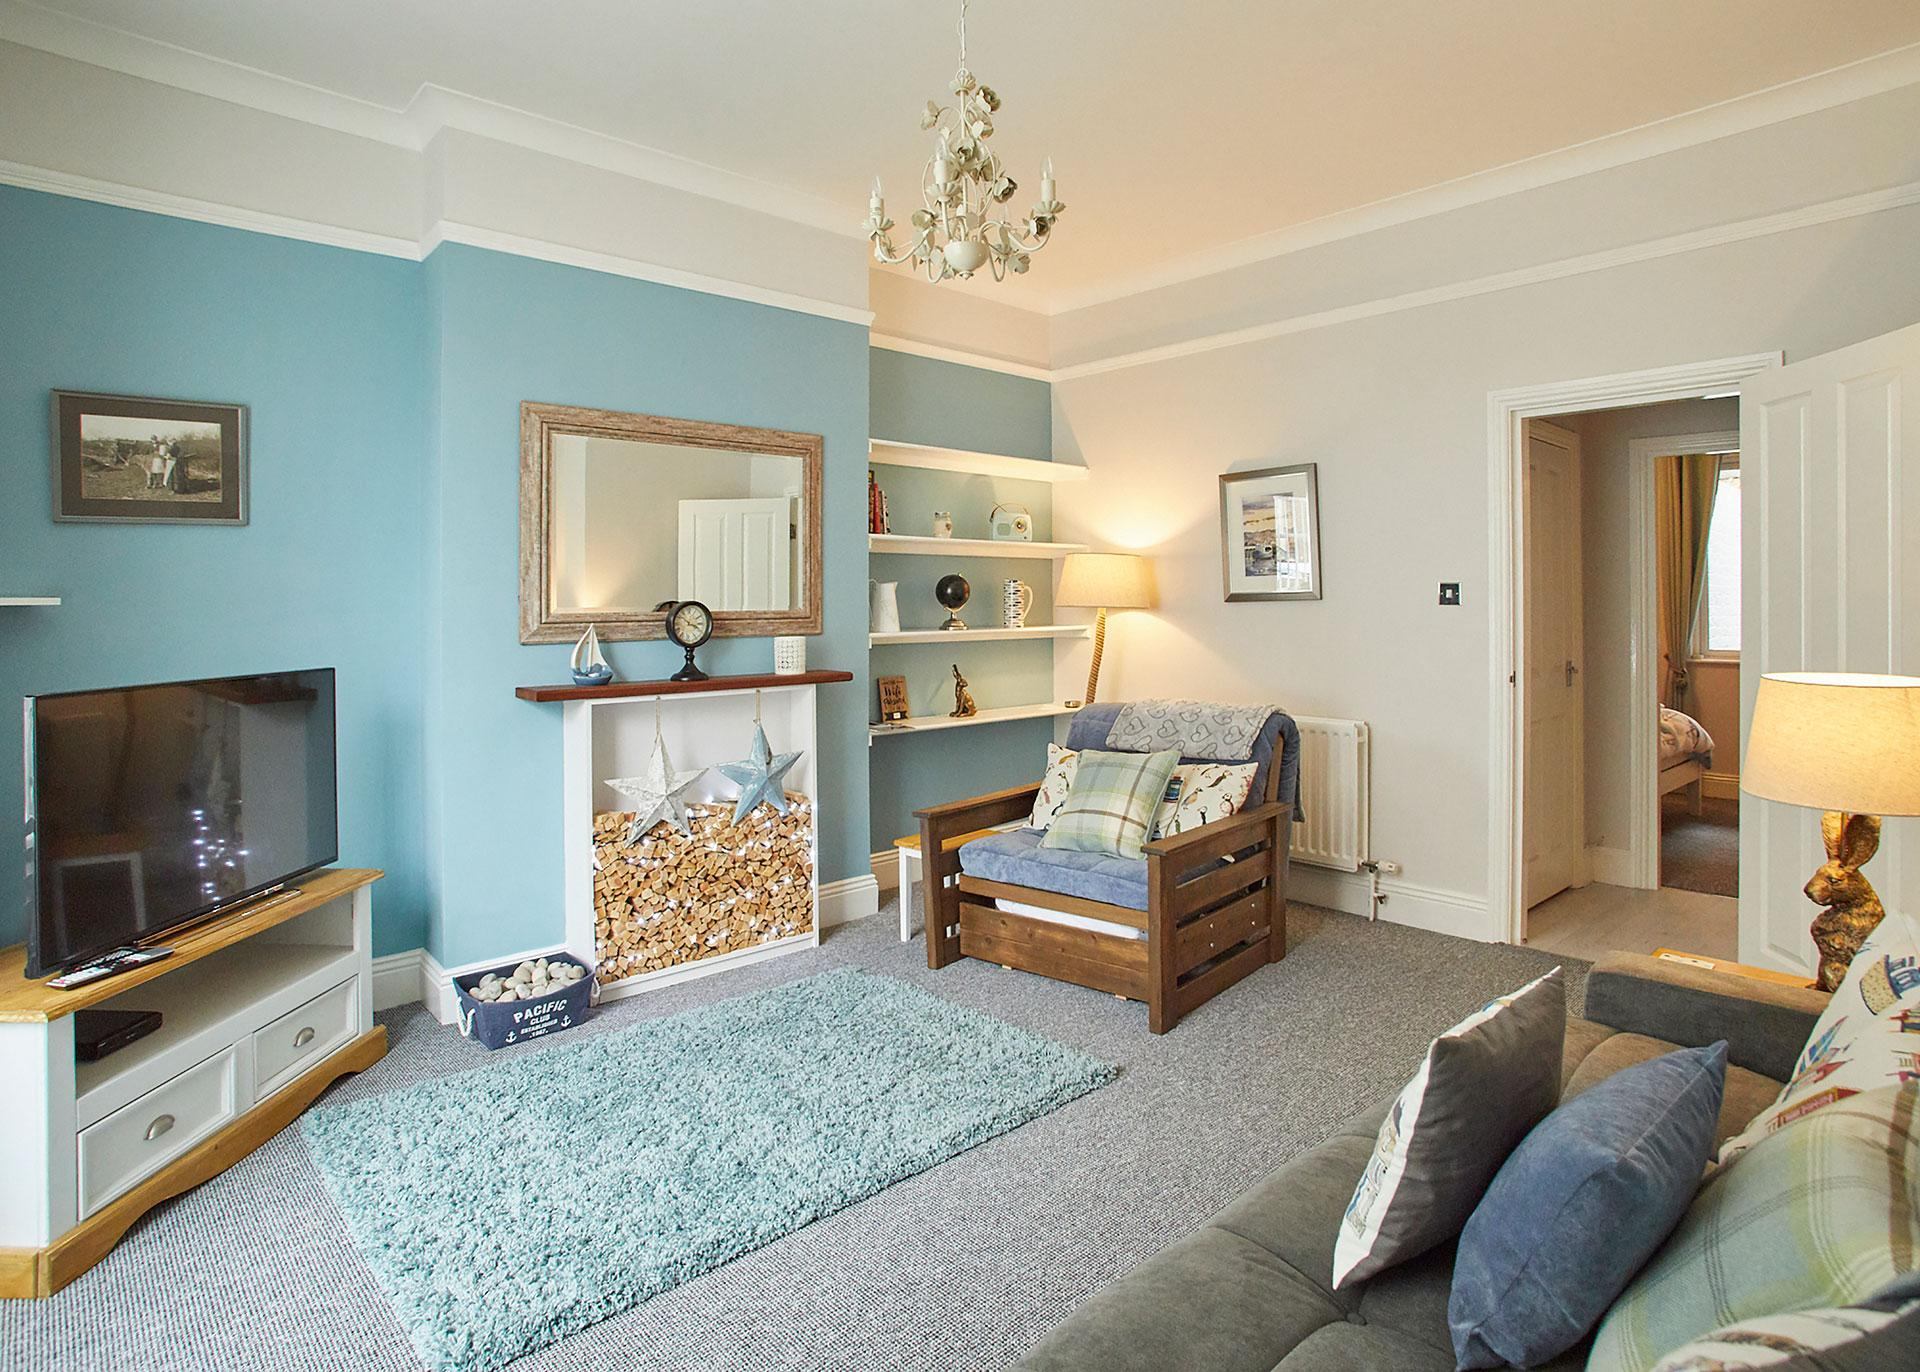 Property Image 1 - homely one bedroom holiday apartment in the heart of Whitby